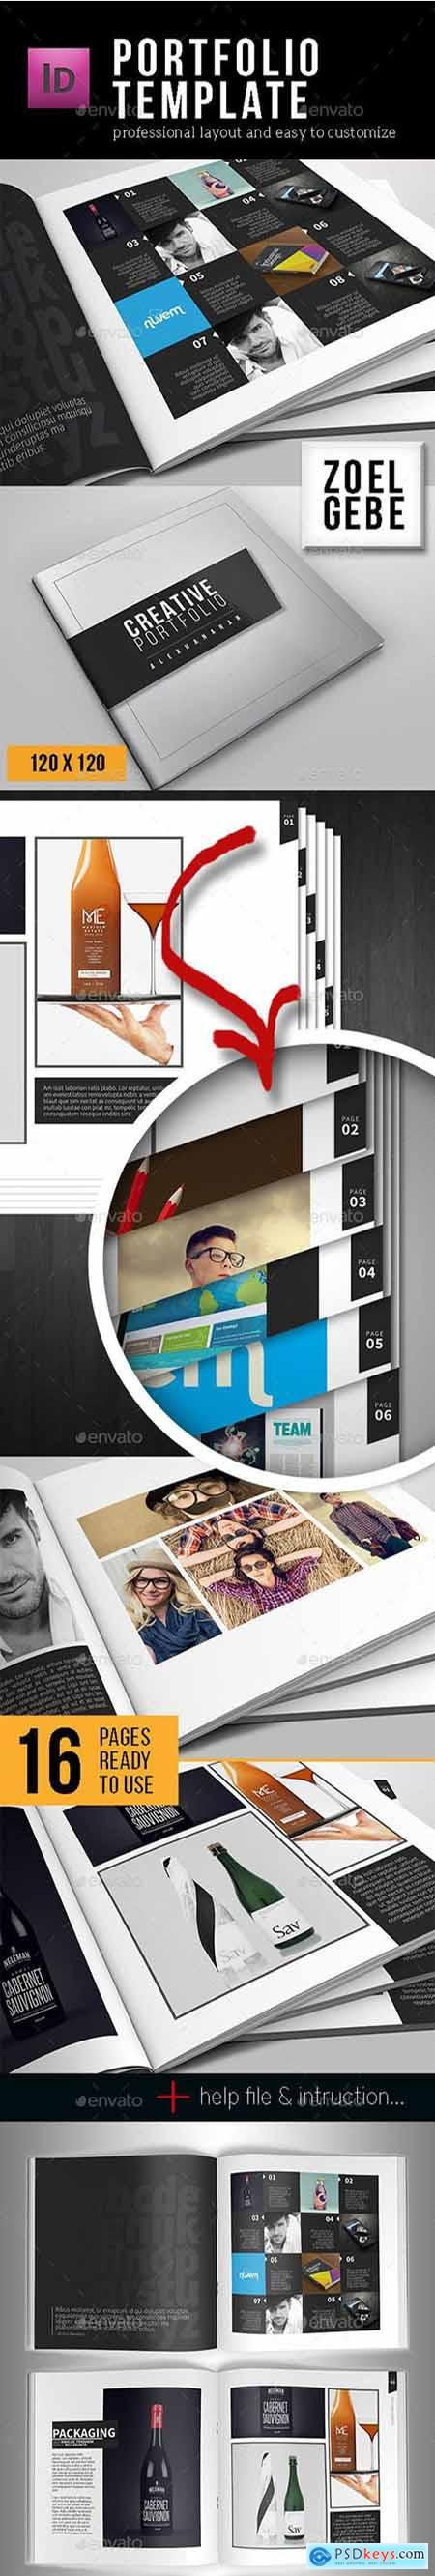 Graphicriver Portfolio Template - Square